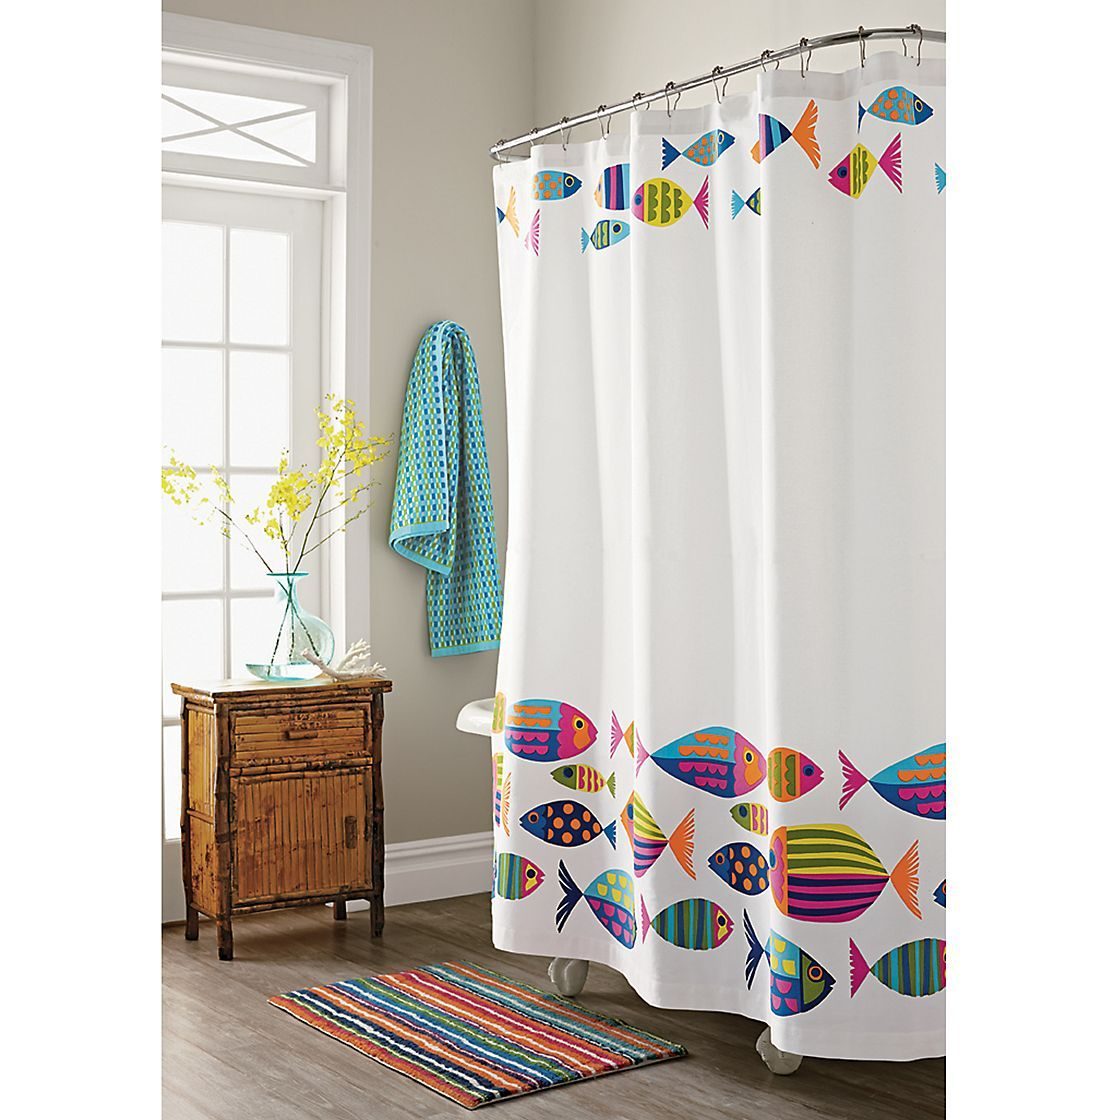 Calypso Fish Shower Curtain The Company Store Care For A Swim